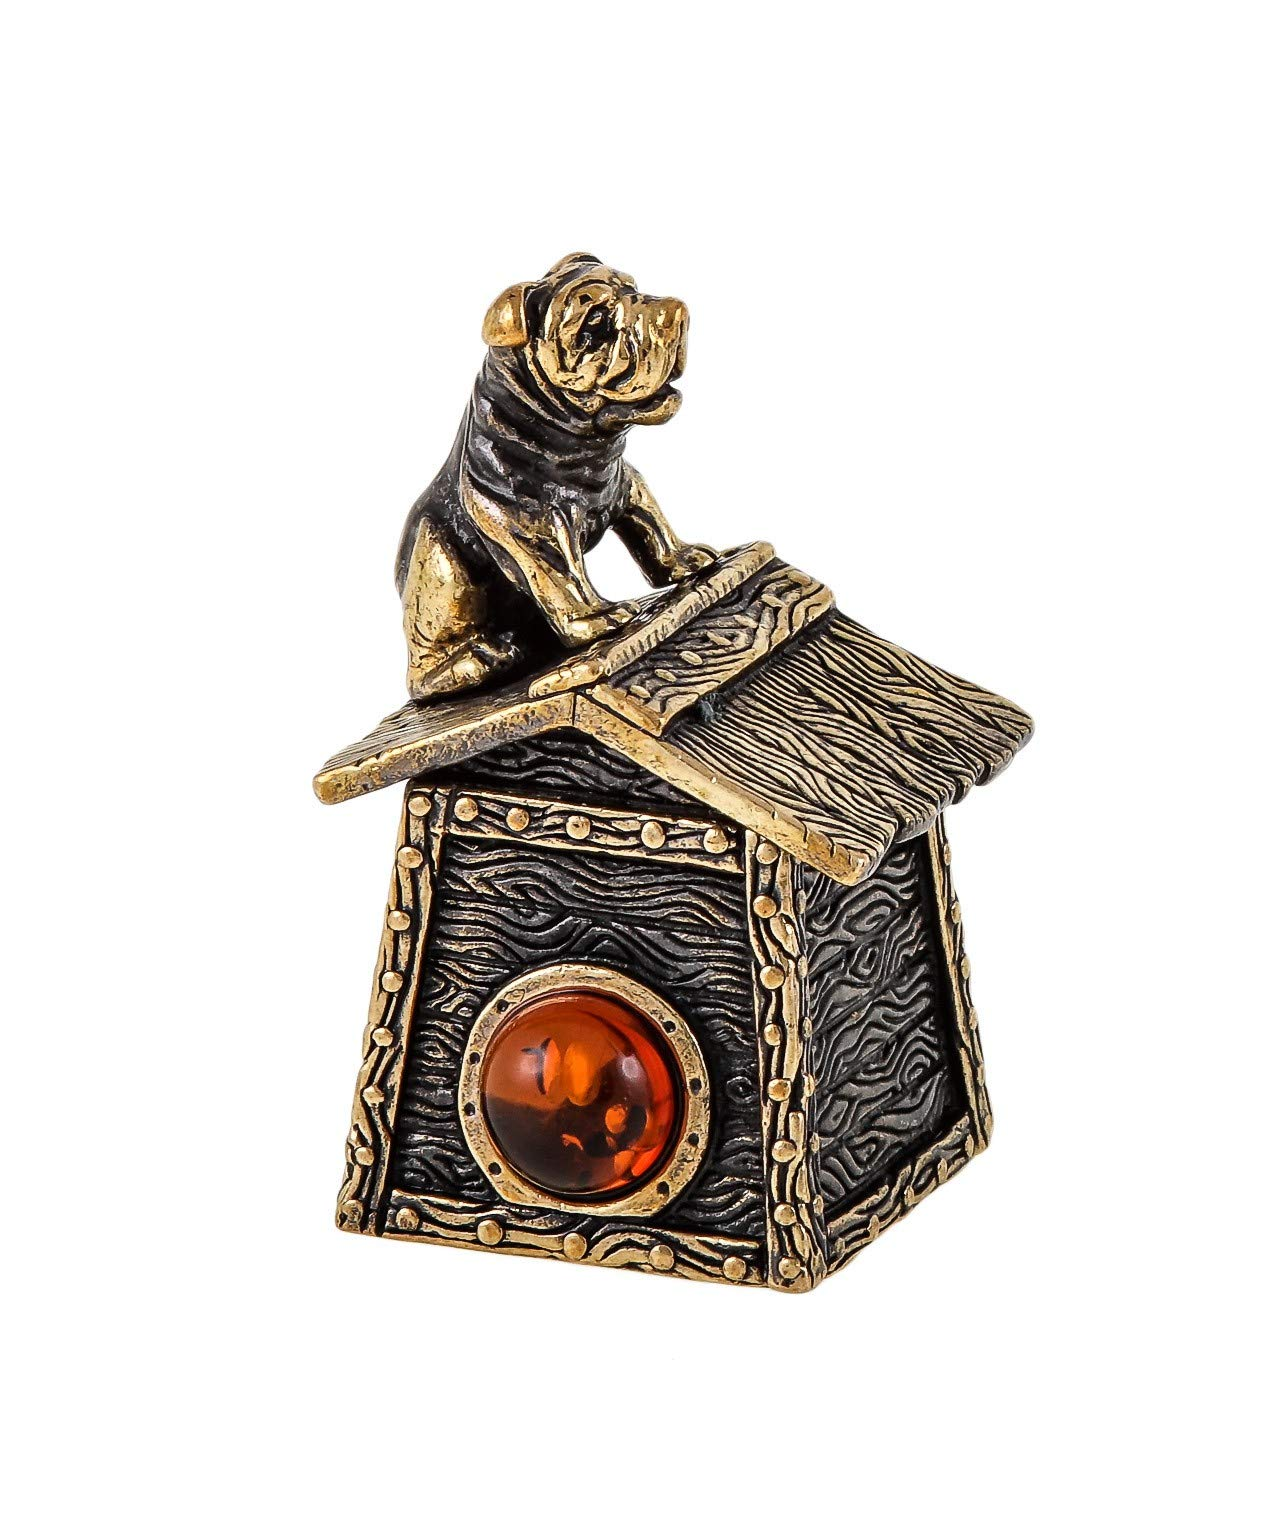 Collectible Thimble (Boxer on Kennel Top) Decorative Amber and Brass Souvenir Thimbles. Antique Designs from Kaliningrad, Russia. Packed in a Beautiful Siberian Birch Bark Gift Box (Random Selection) by Brass and Amber Art